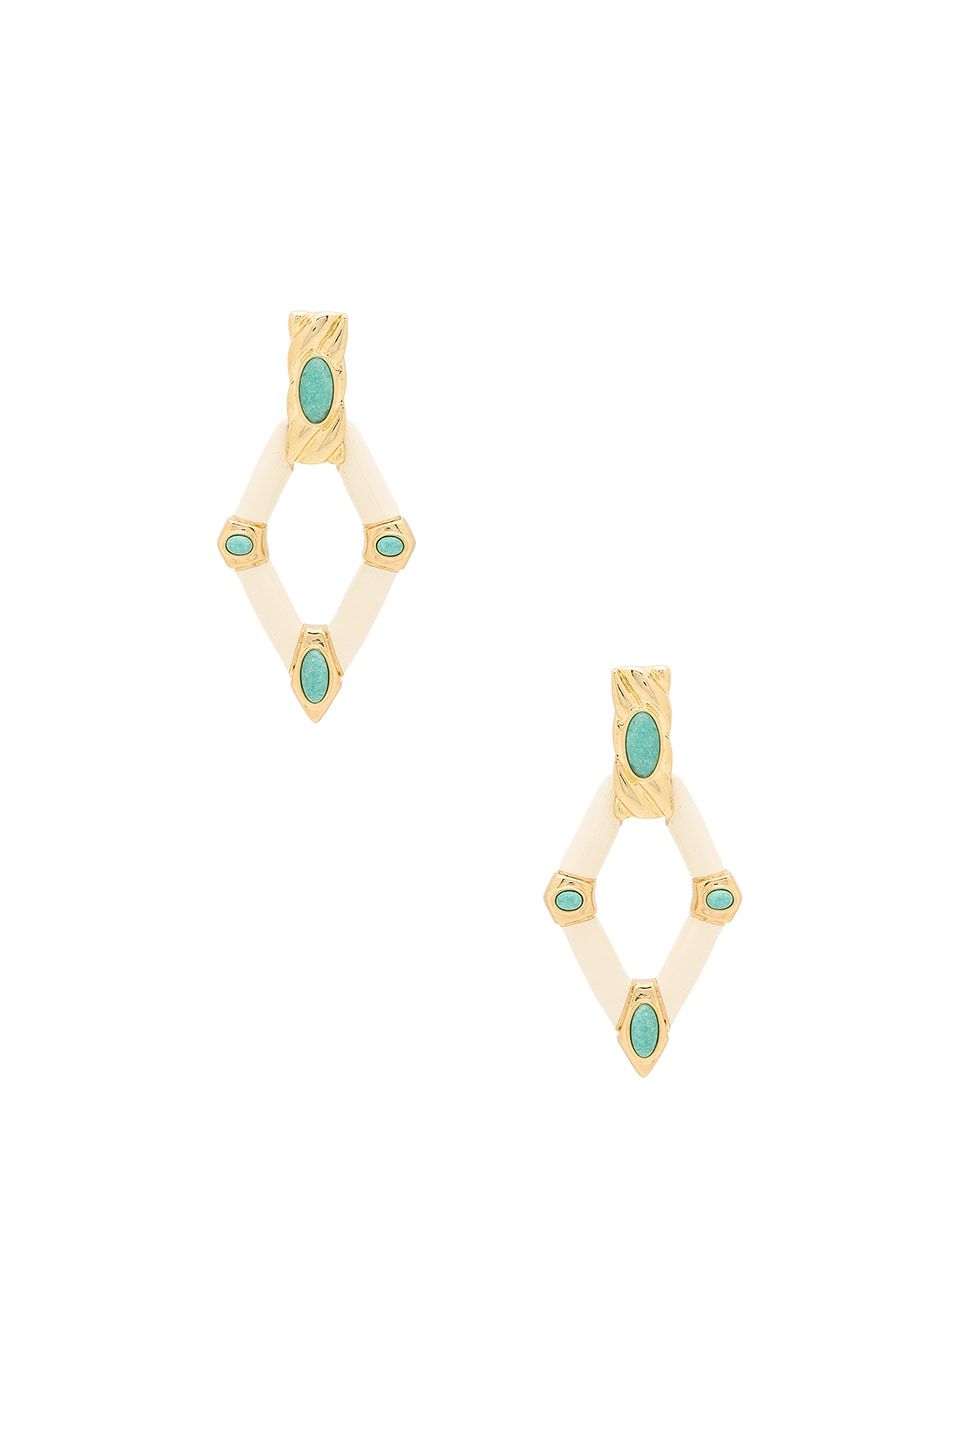 House of Harlow 1960 Valda Statement Earrings in Gold & Brazilian Amazonite